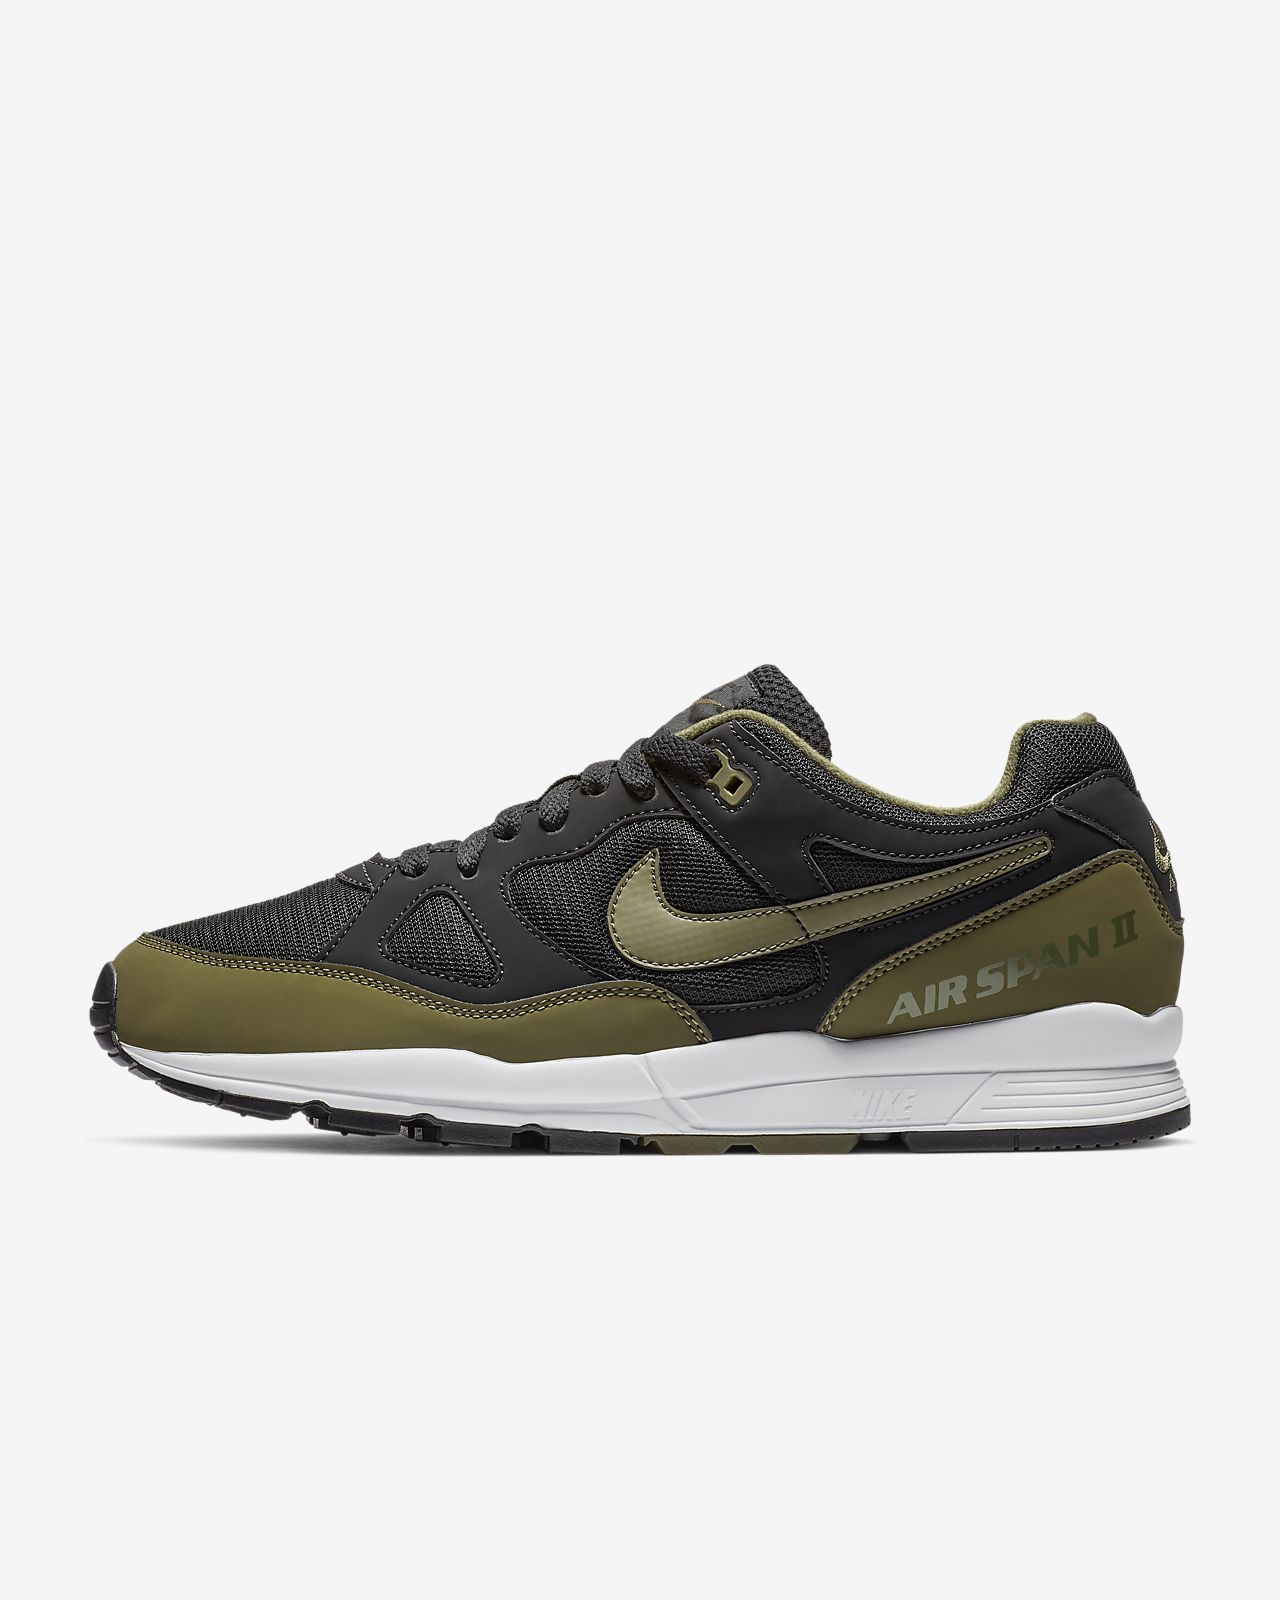 new arrival 894f0 c9085 ... Chaussure Nike Air Span II pour Homme